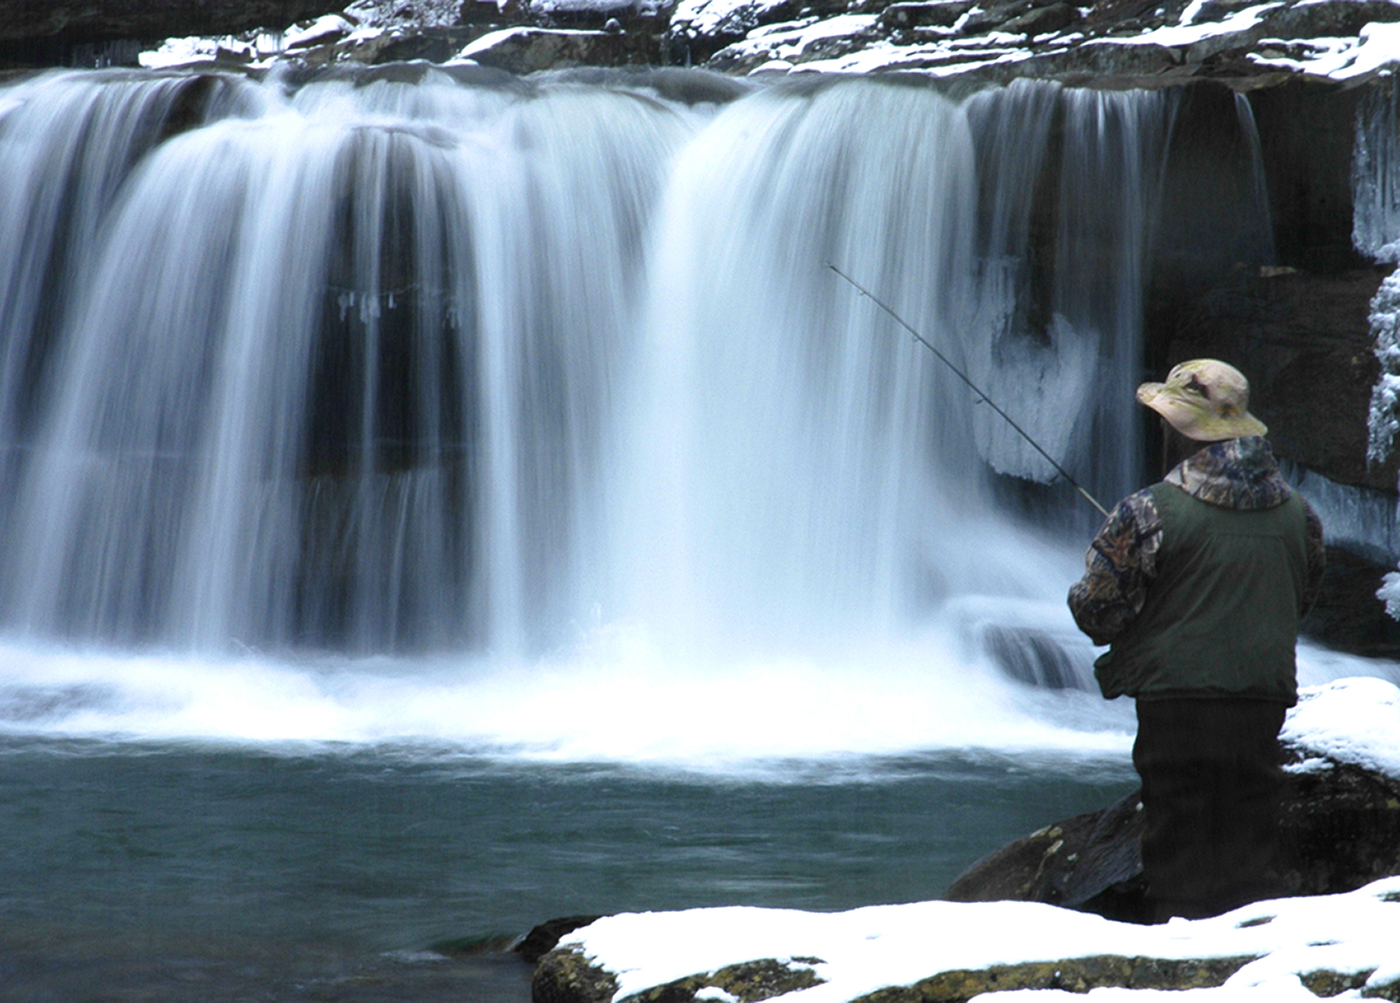 A man fishes at the foot of a waterfall.